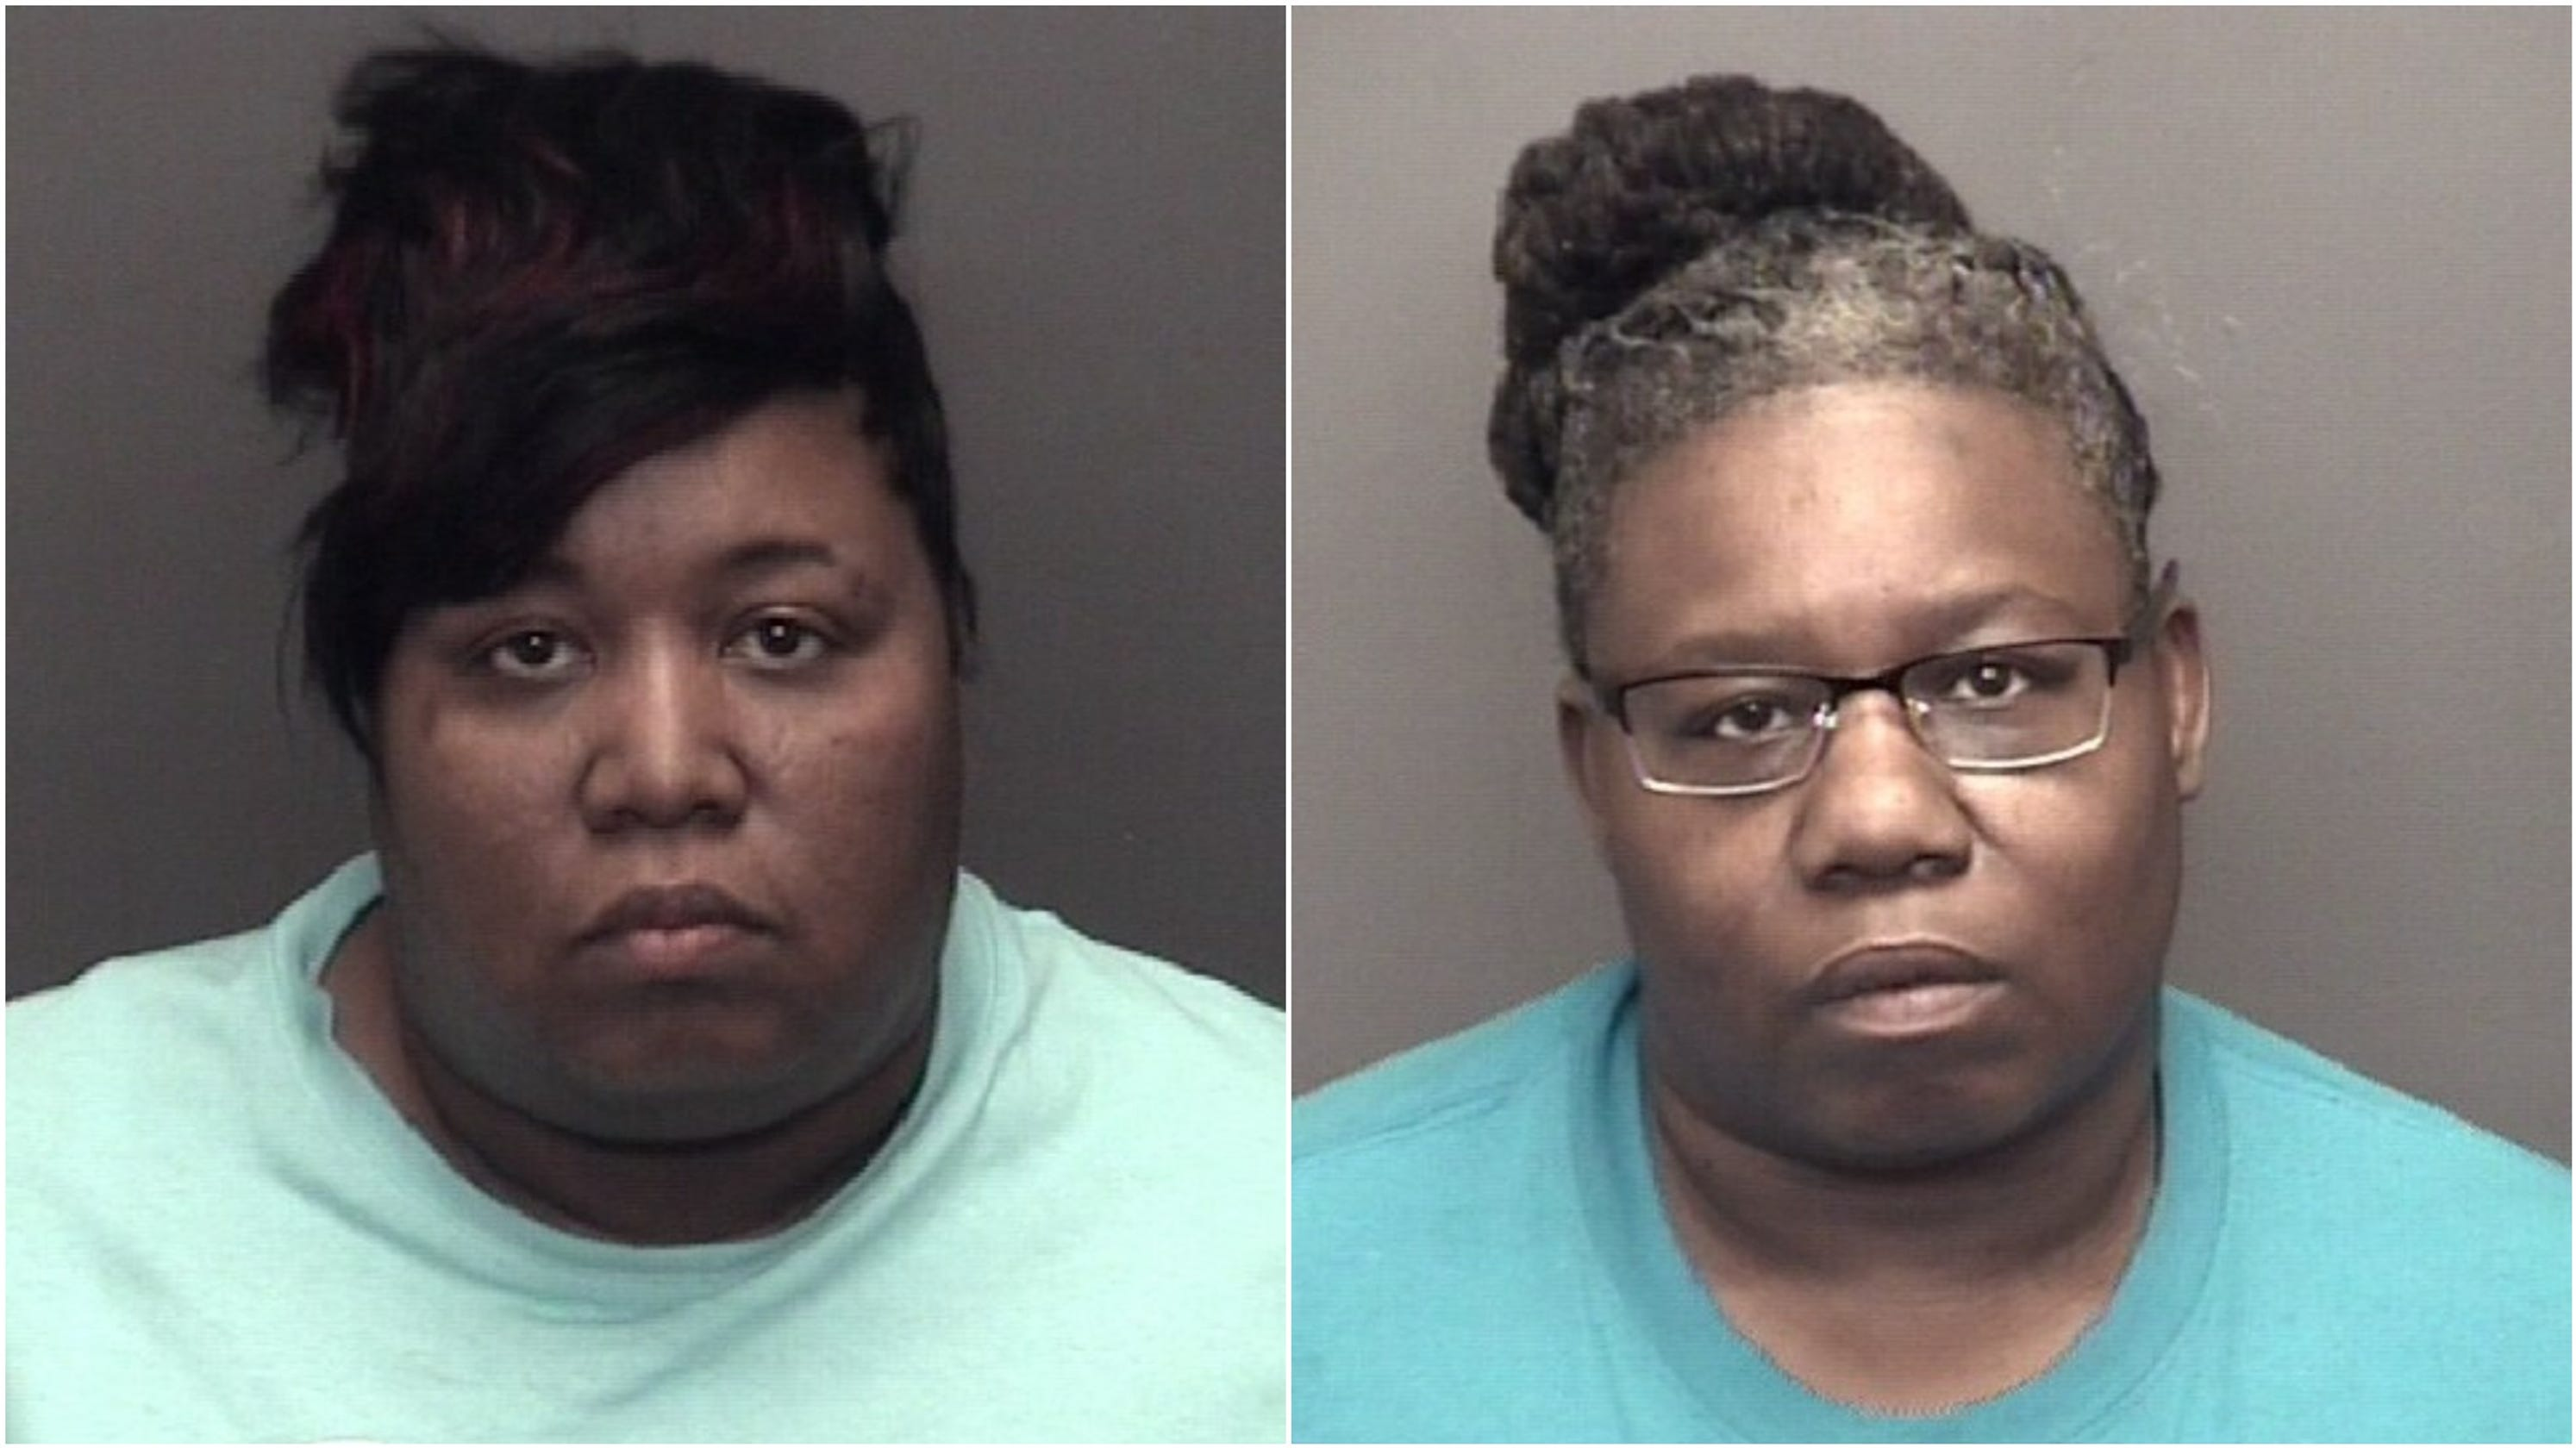 Evansville caterers charged with dealing meth, drug possession